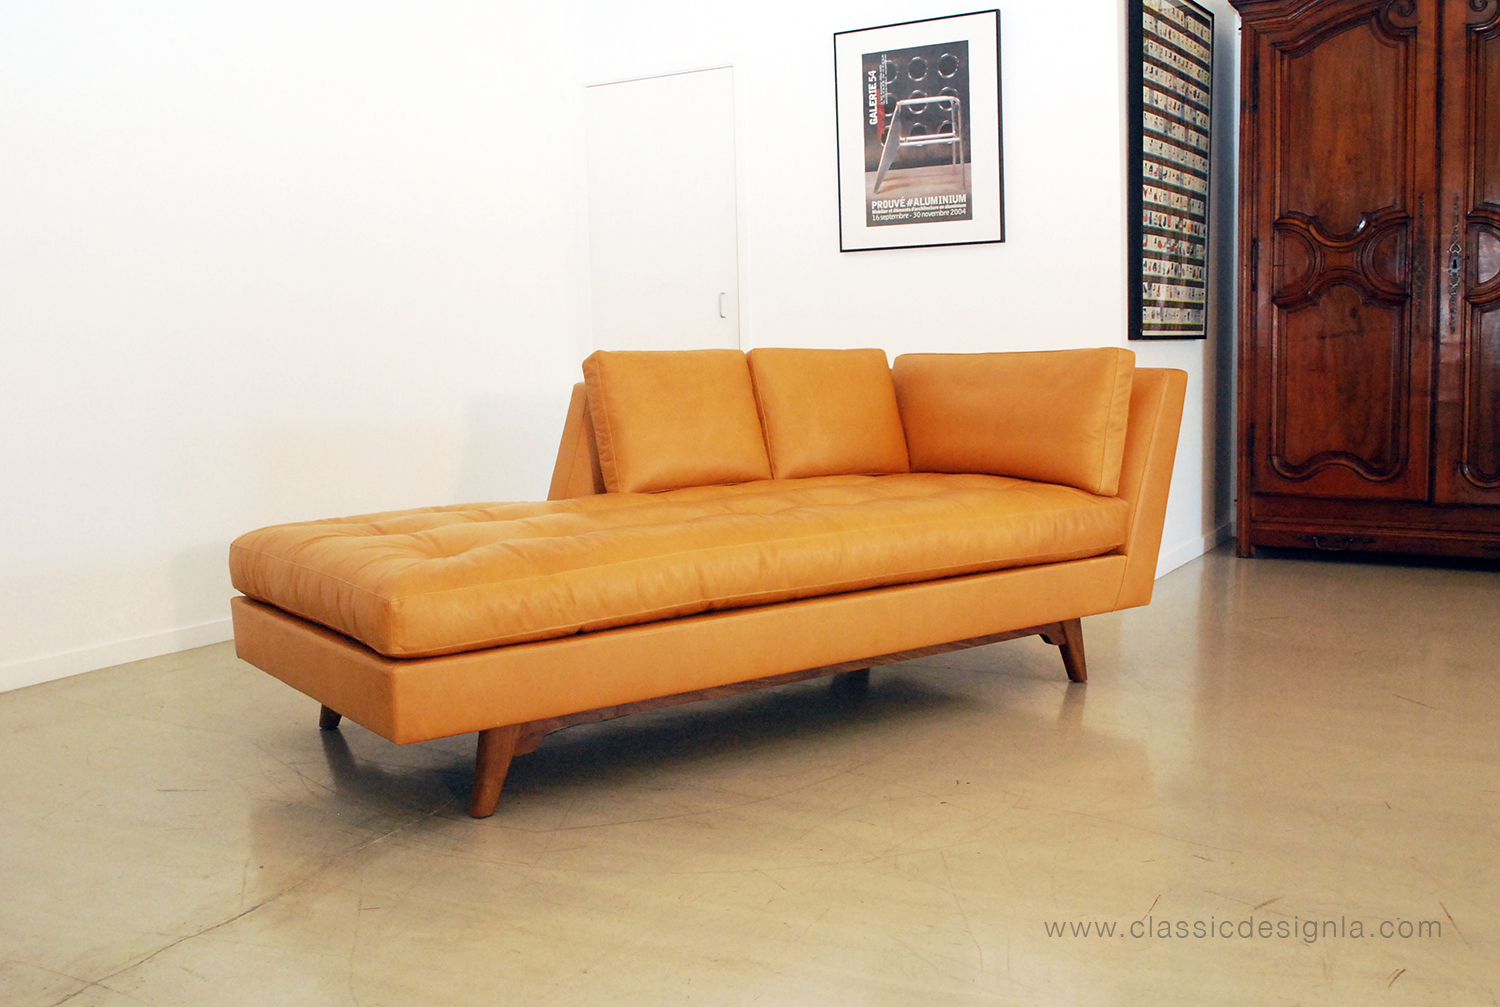 Classic design edward wormley inspired leather chaise lounge for Chaise leather lounge